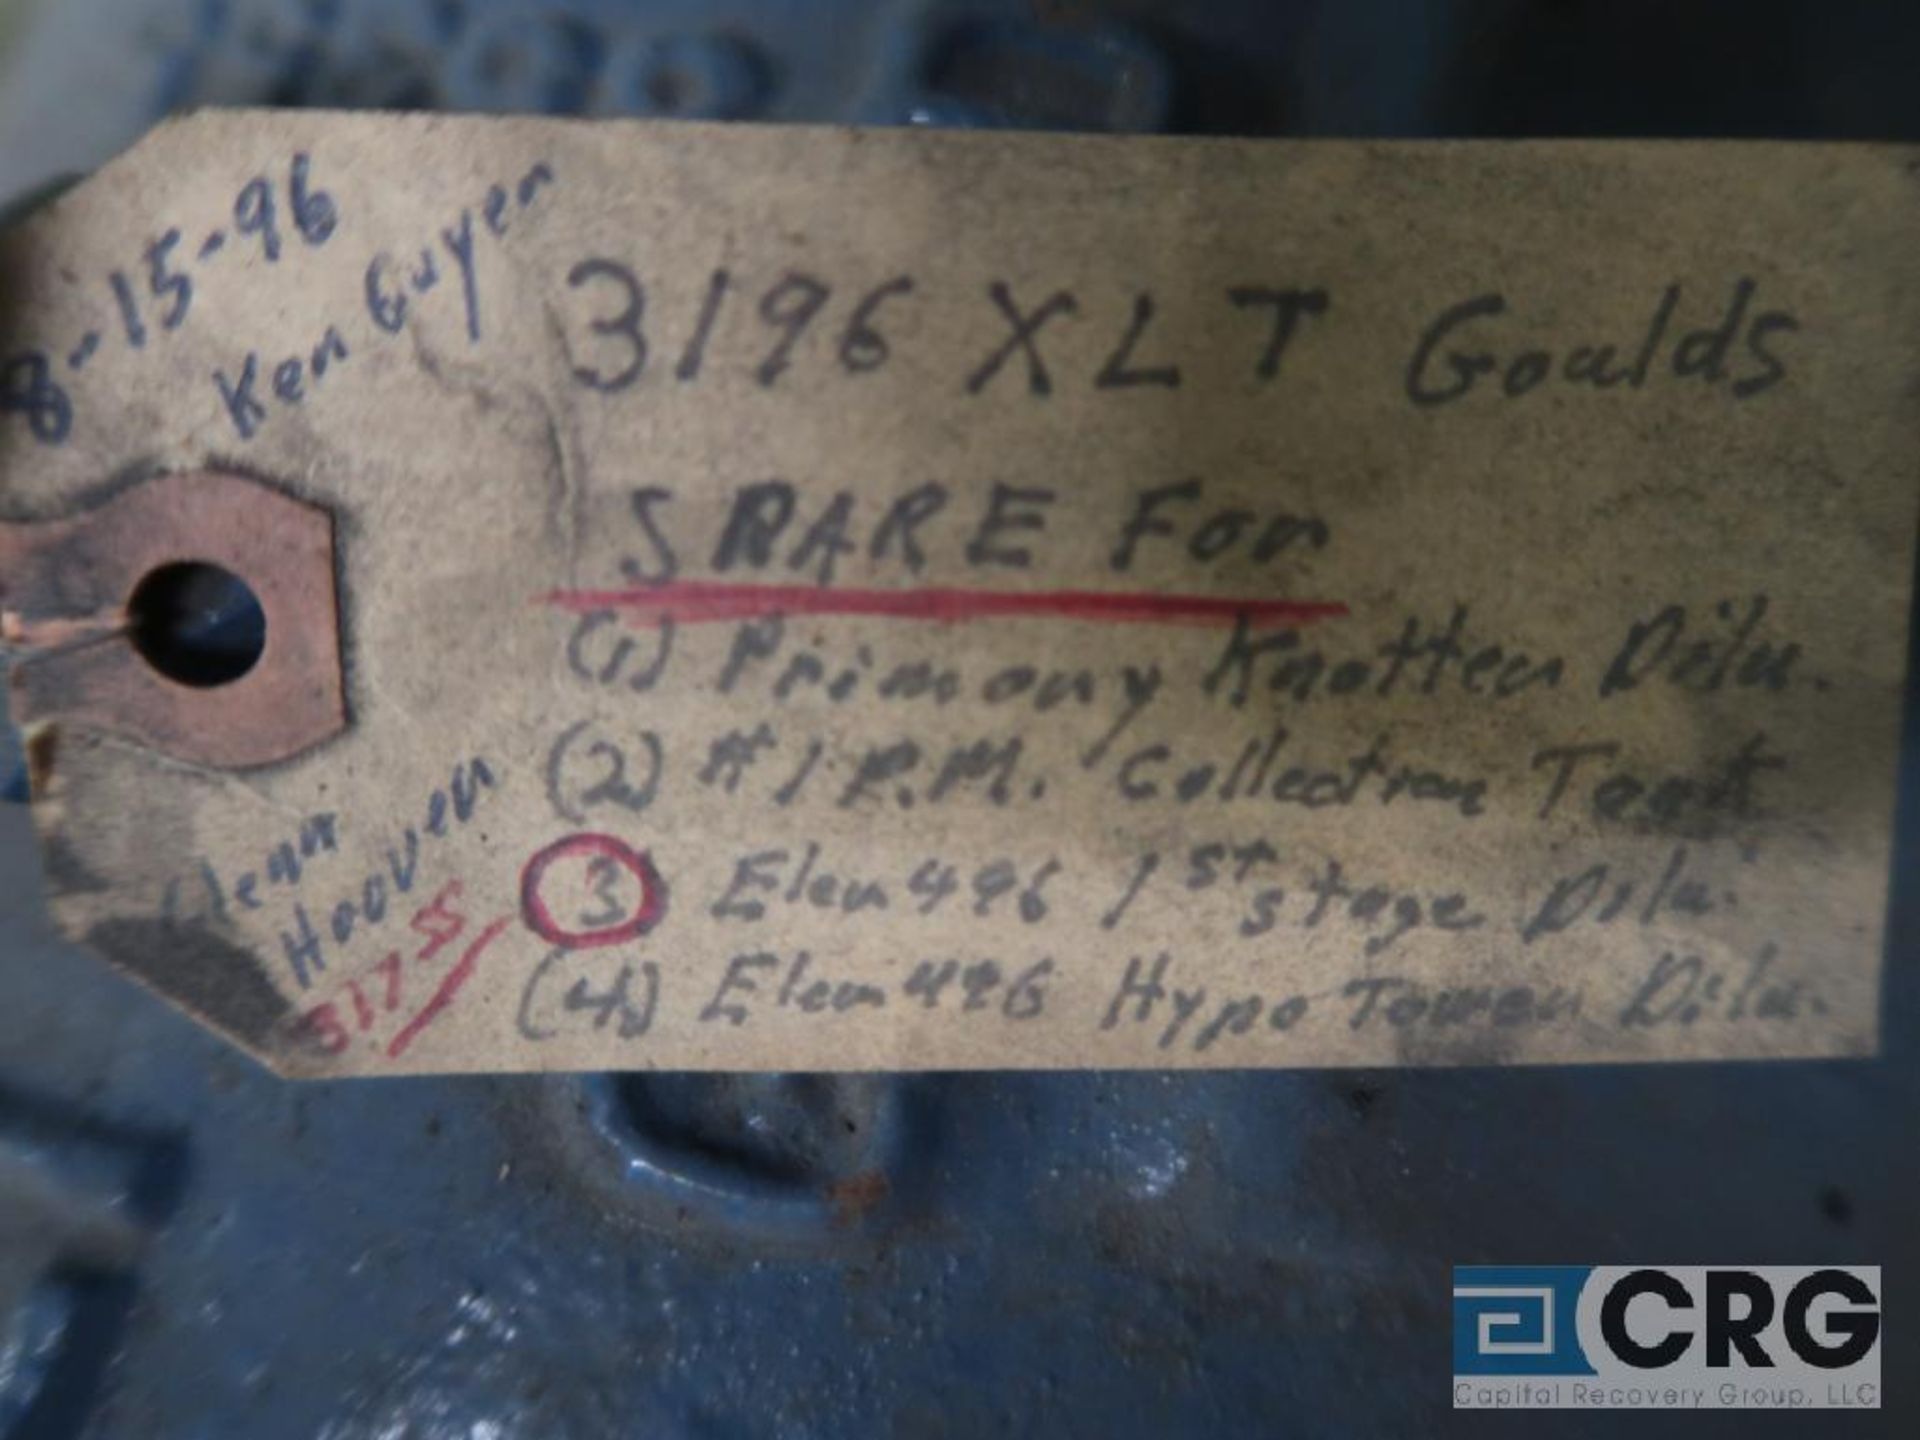 Goulds 3196 XLT 13 in. pump (Basement Stores) - Image 3 of 3